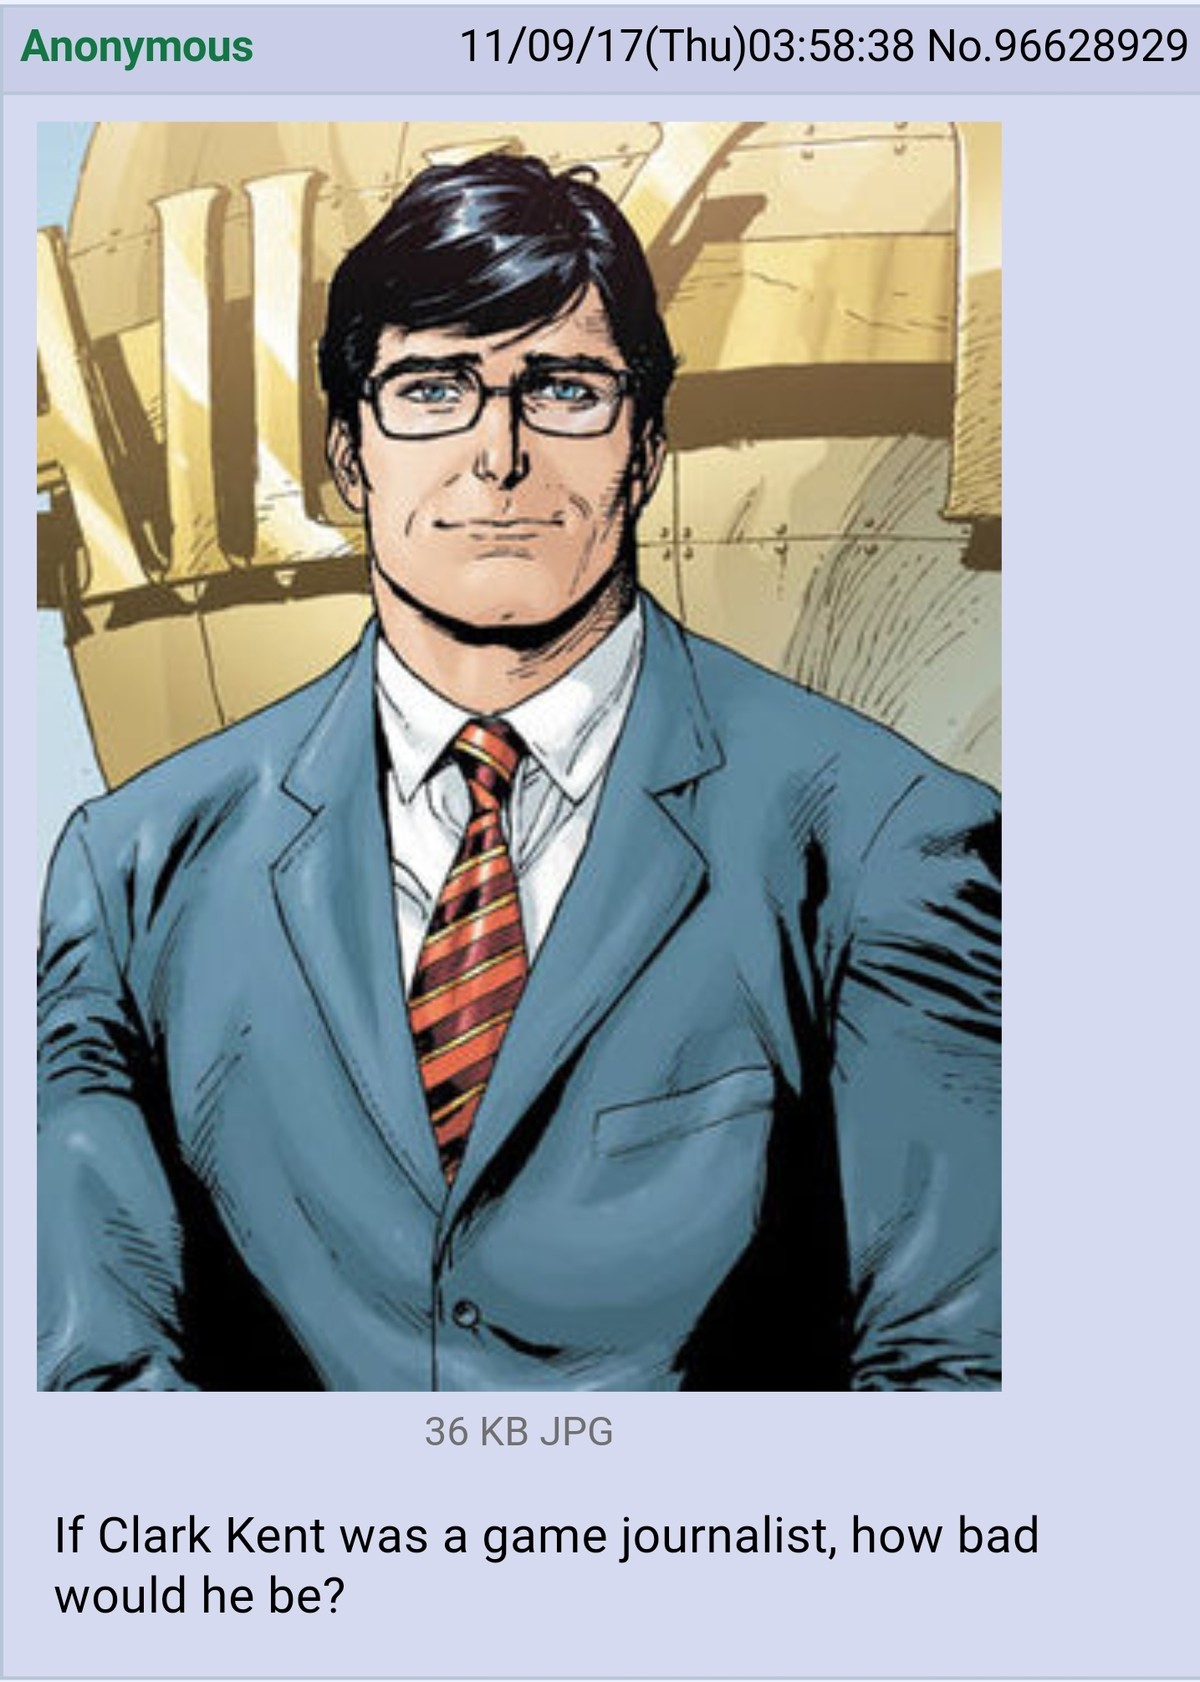 Mediocre. . Anonymous 11/ 09/ 17( Thu) : 58: 38 No. 96628929 36 KB JPG If Clark Kent was a game journalist, how bad would he be?. I don't get it. Clark is just a normal guy? Why would he be better at video games than anyone else?